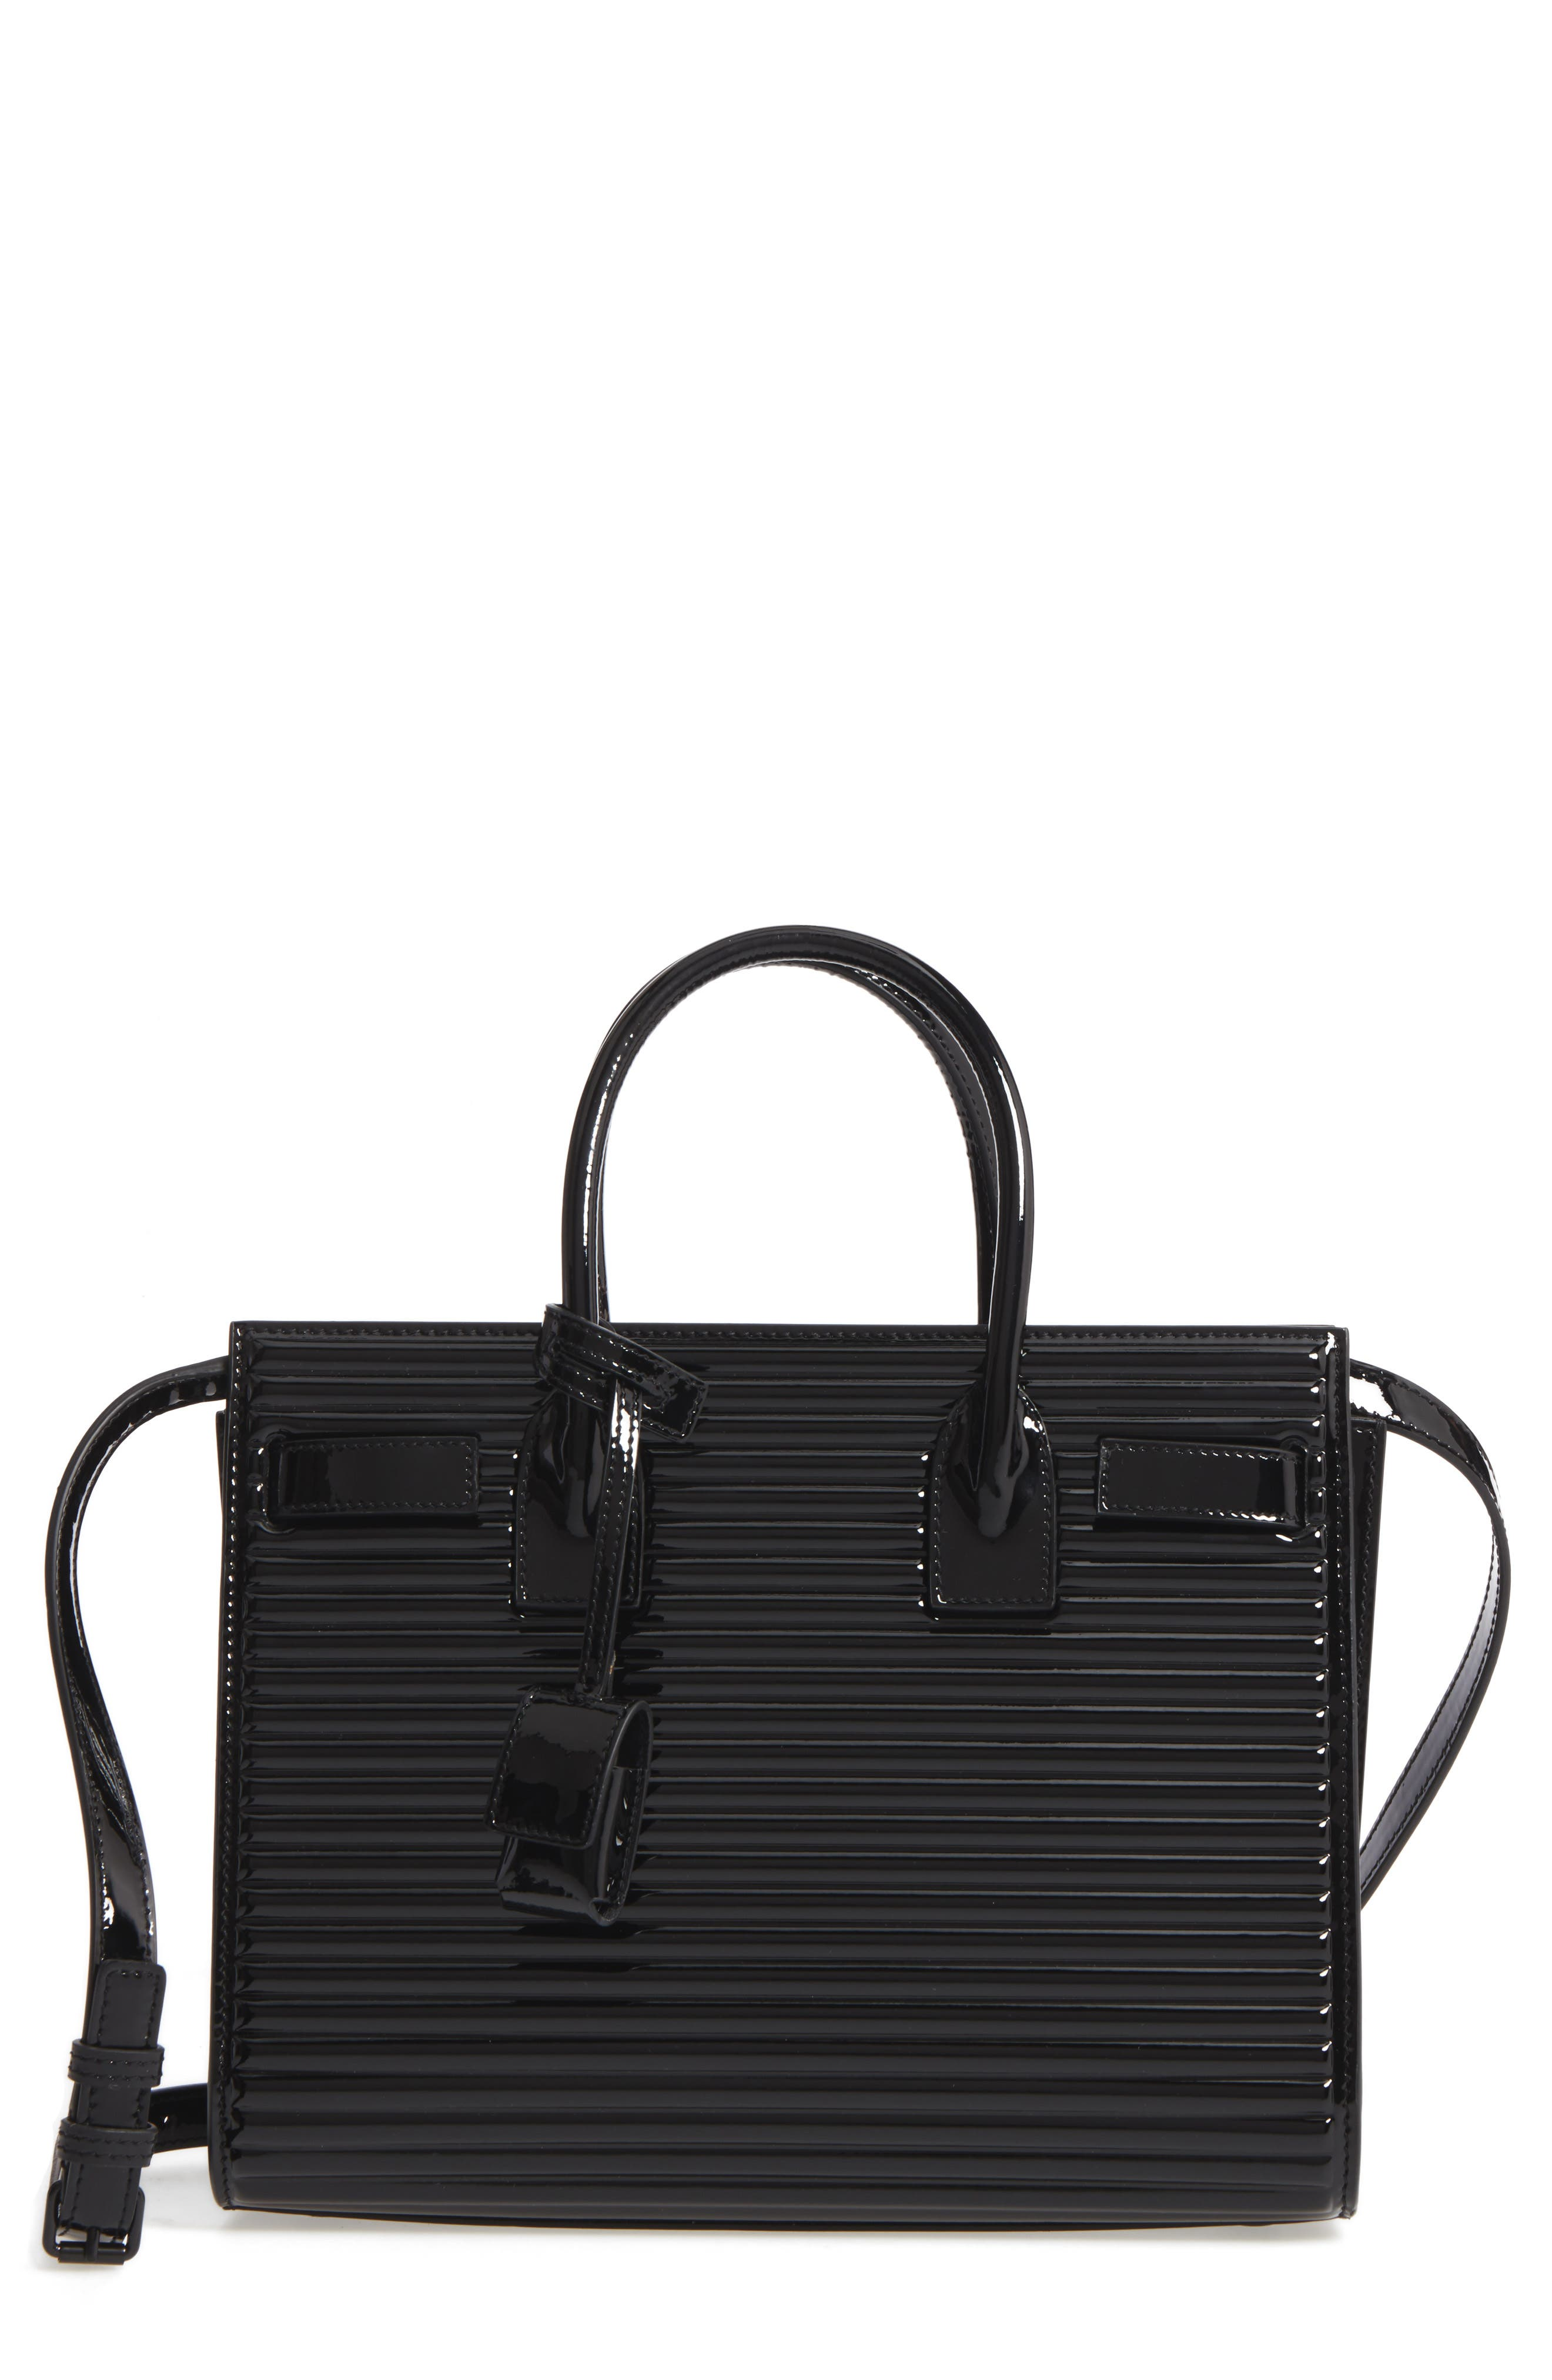 SAINT LAURENT Baby Sac de Jour Quilted Calfskin Leather Tote